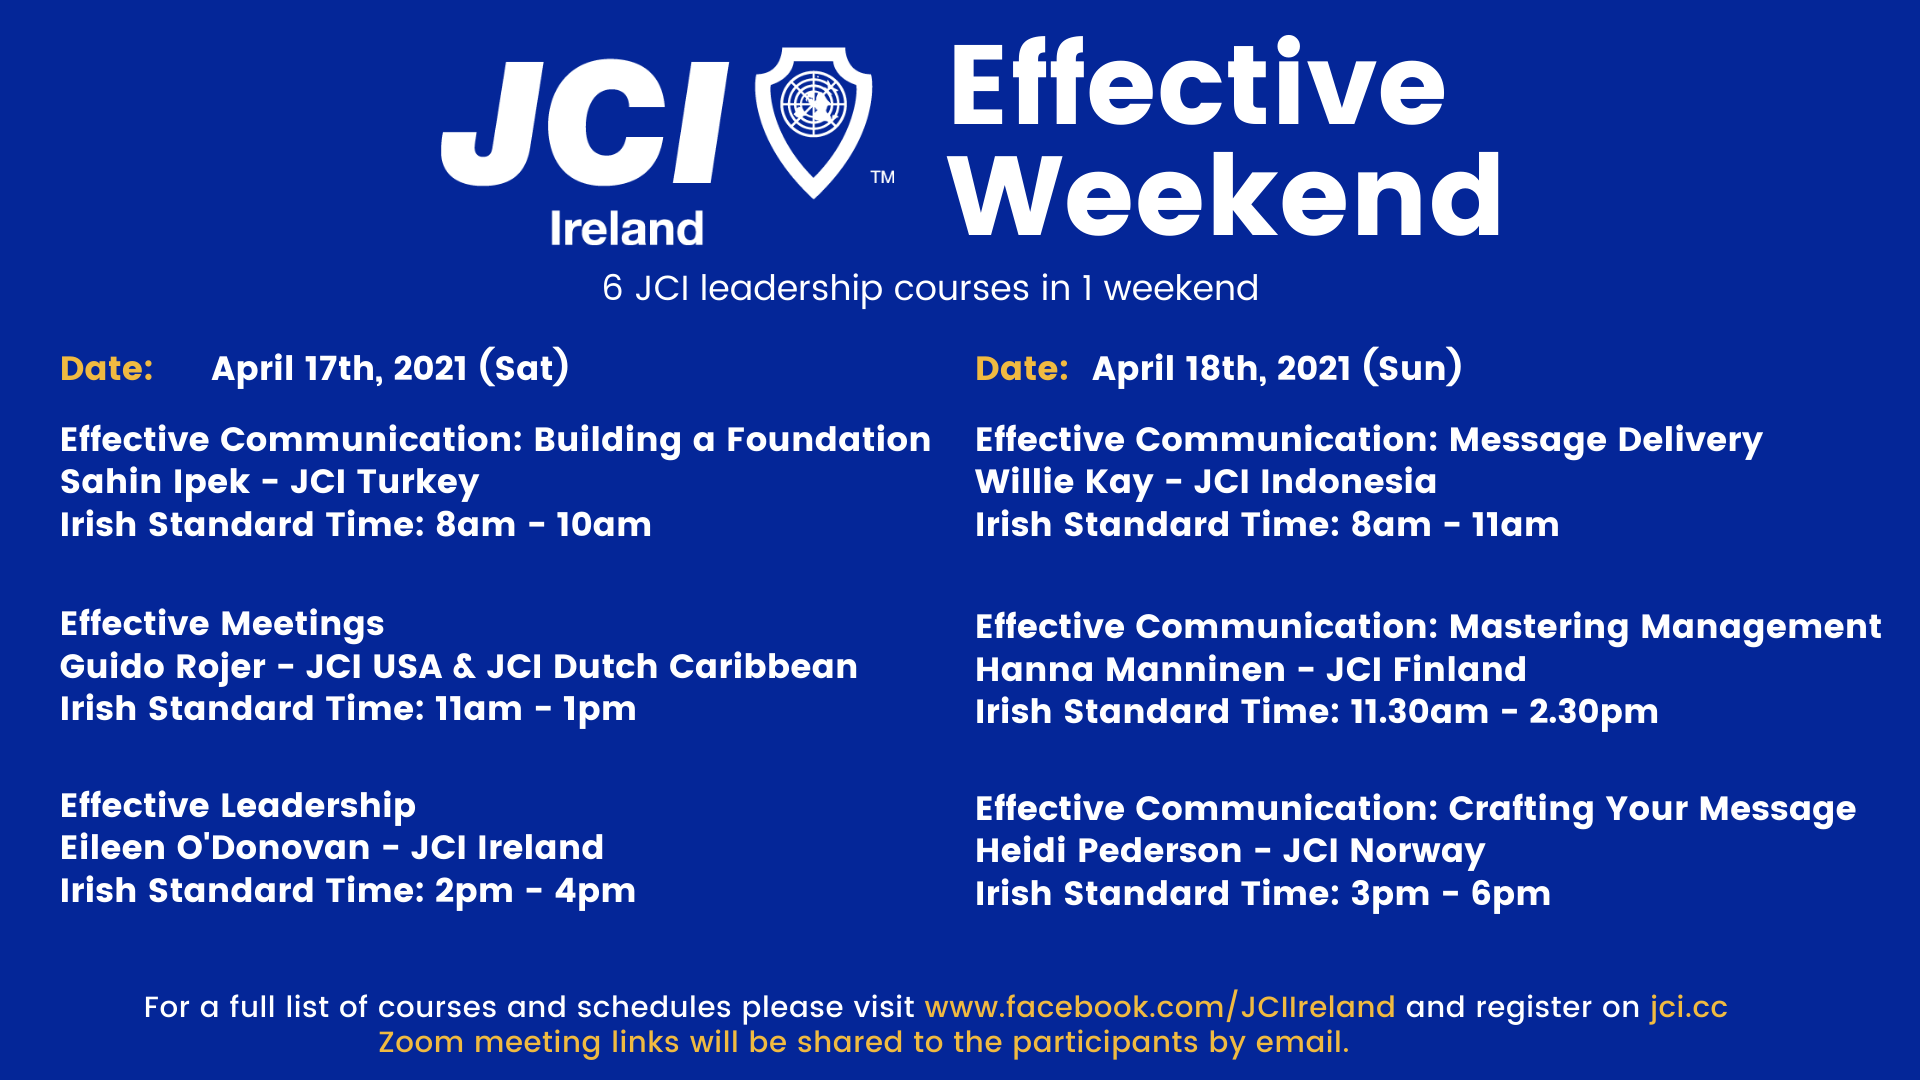 Effective Weekend 2021 - Effective Communication: Building a Foundation